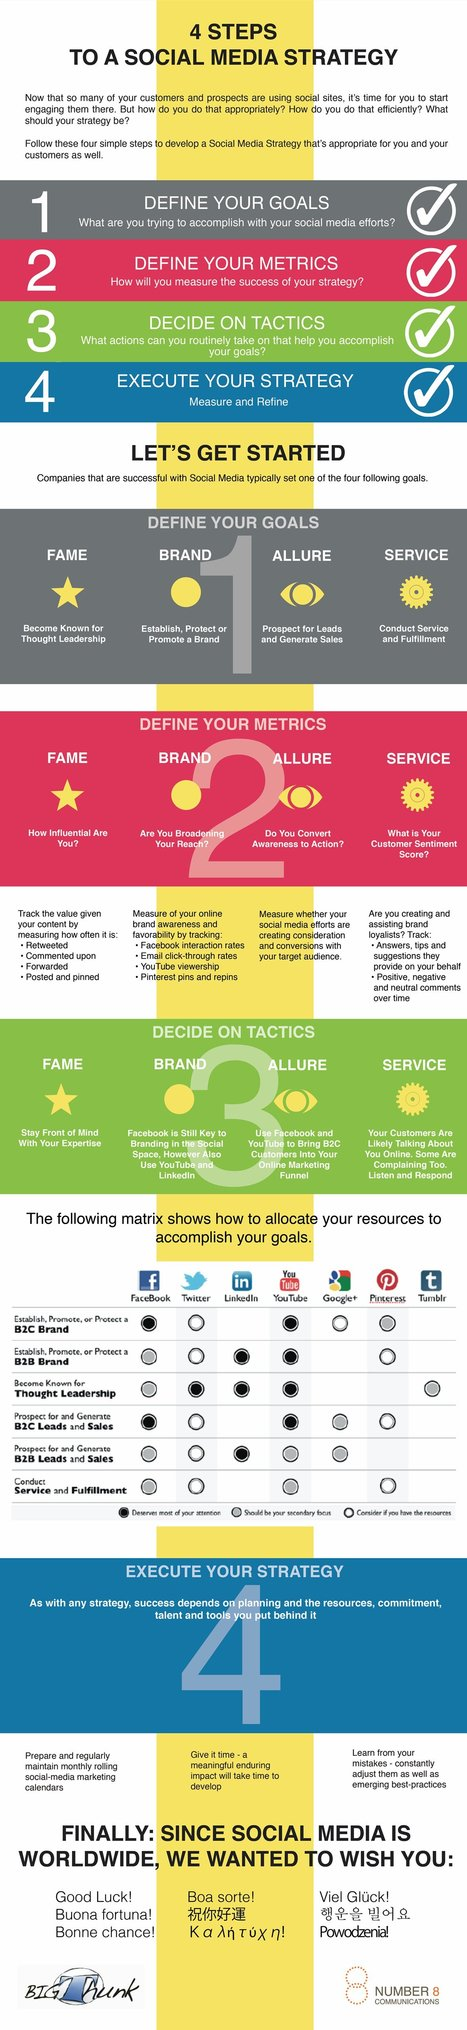 Infographic: The 4 Steps to Social Media Marketing | Social Networking With Facebook | Scoop.it